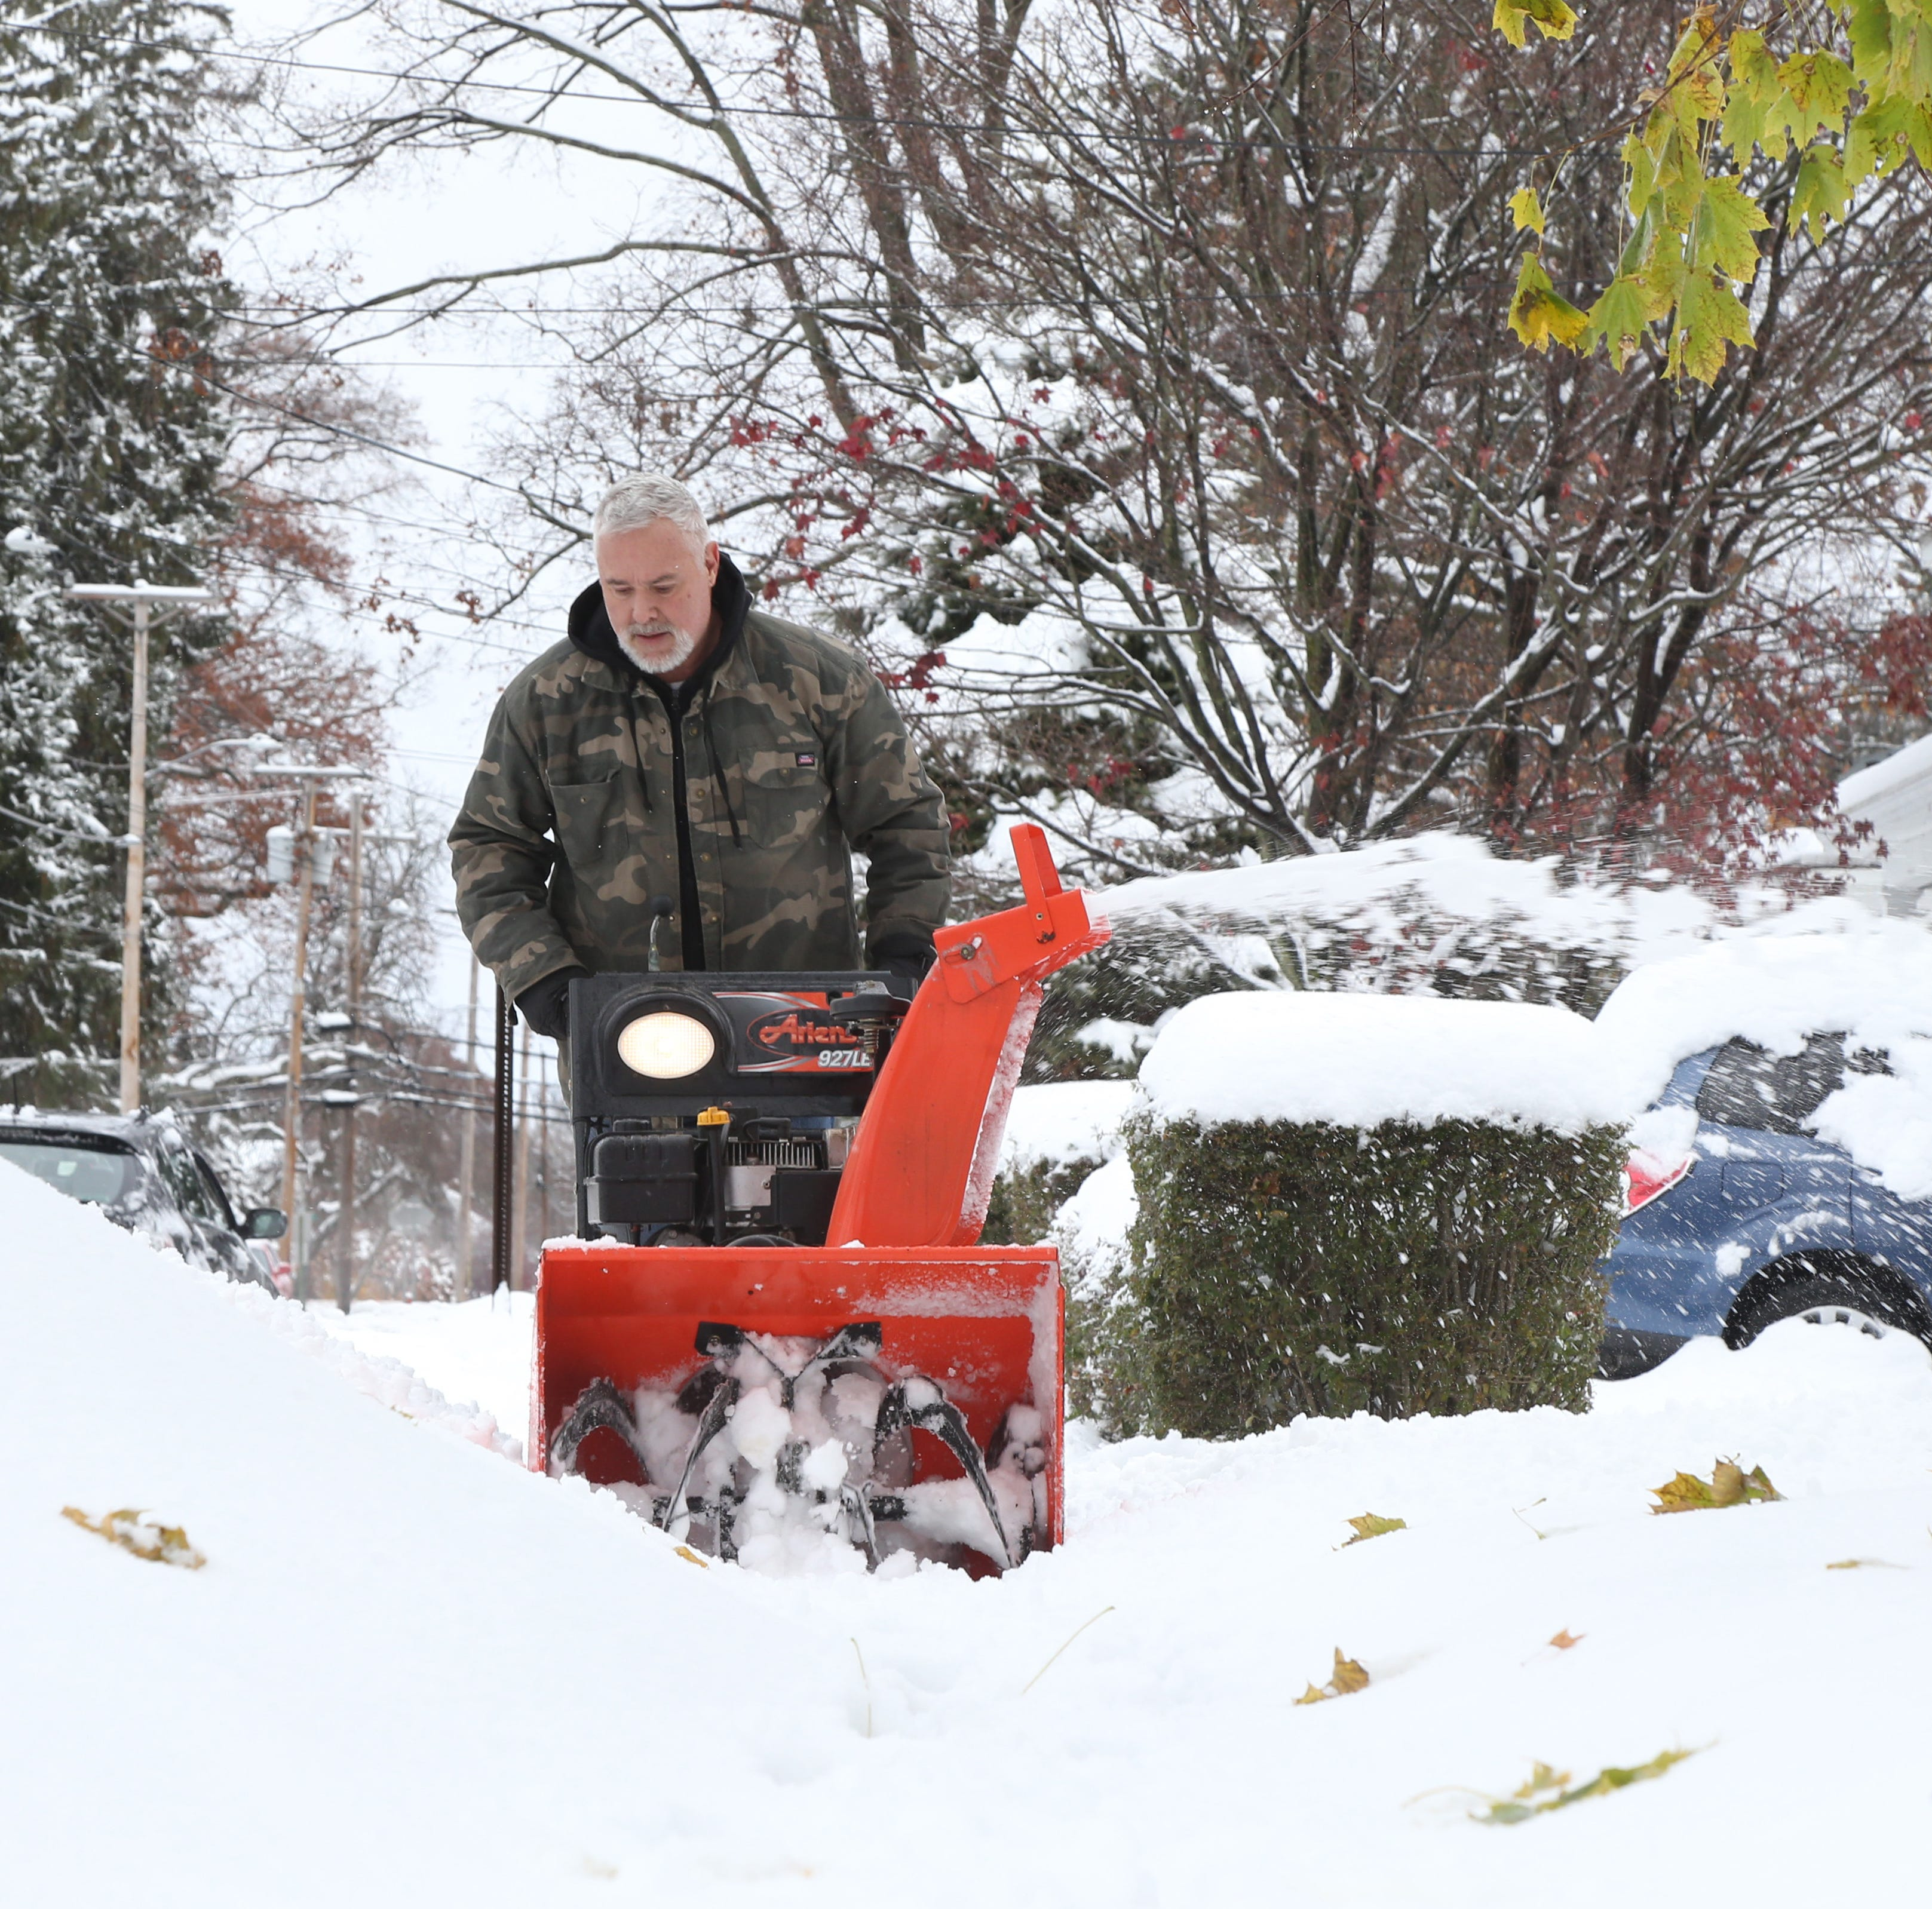 Wayne MacIsaac uses his snow blower to clear snow outside his home in the Village of Wappingers Falls on November 16, 2018.